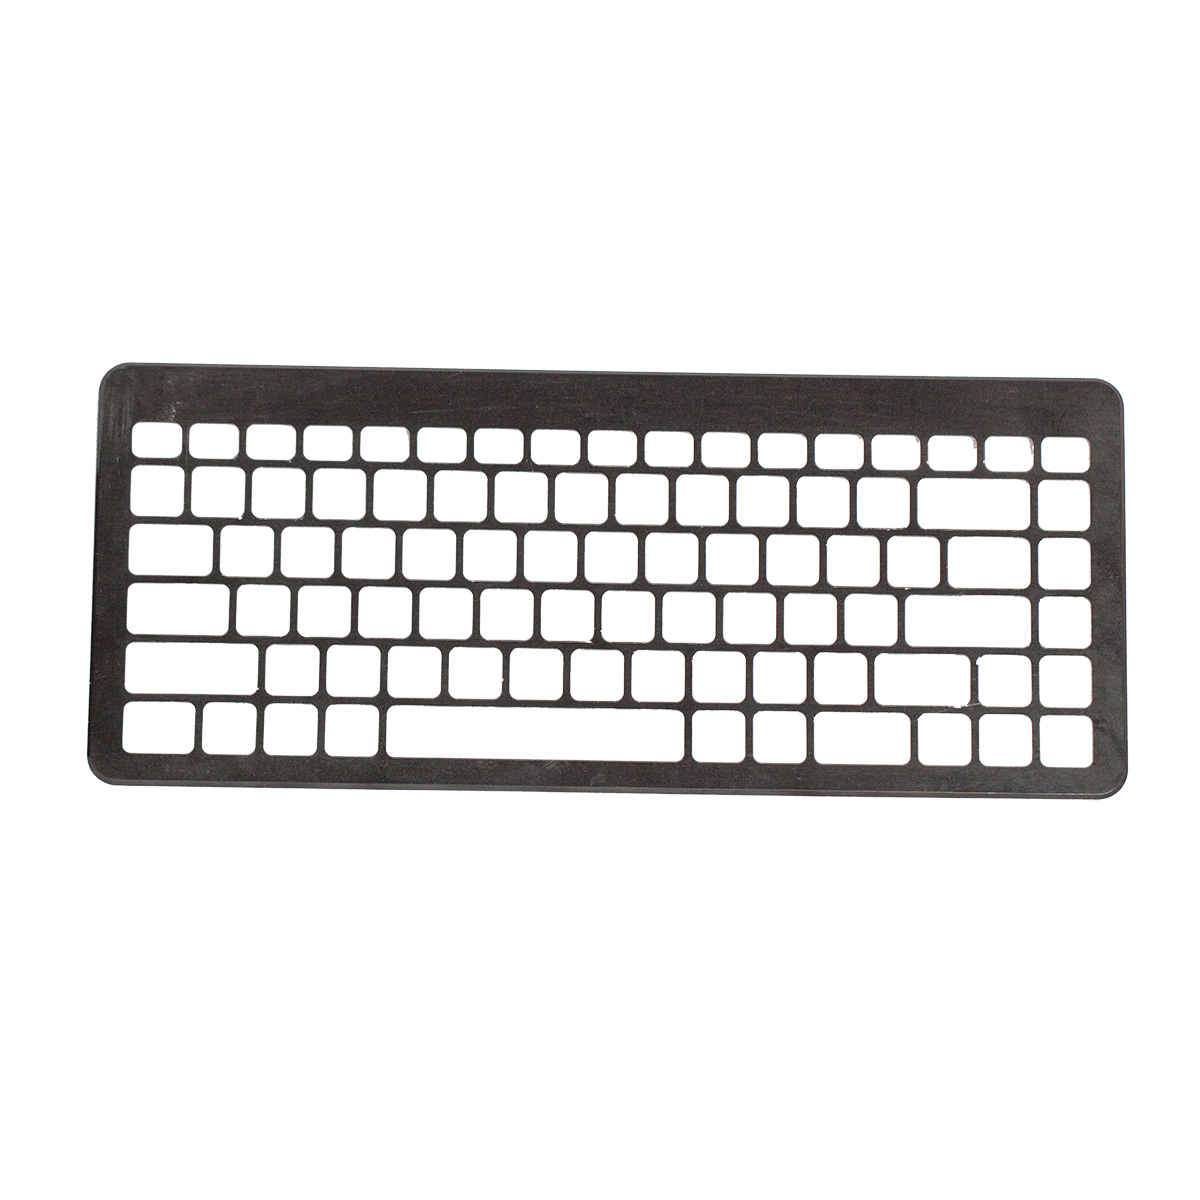 customized computer keypad board cover plastic injection molding